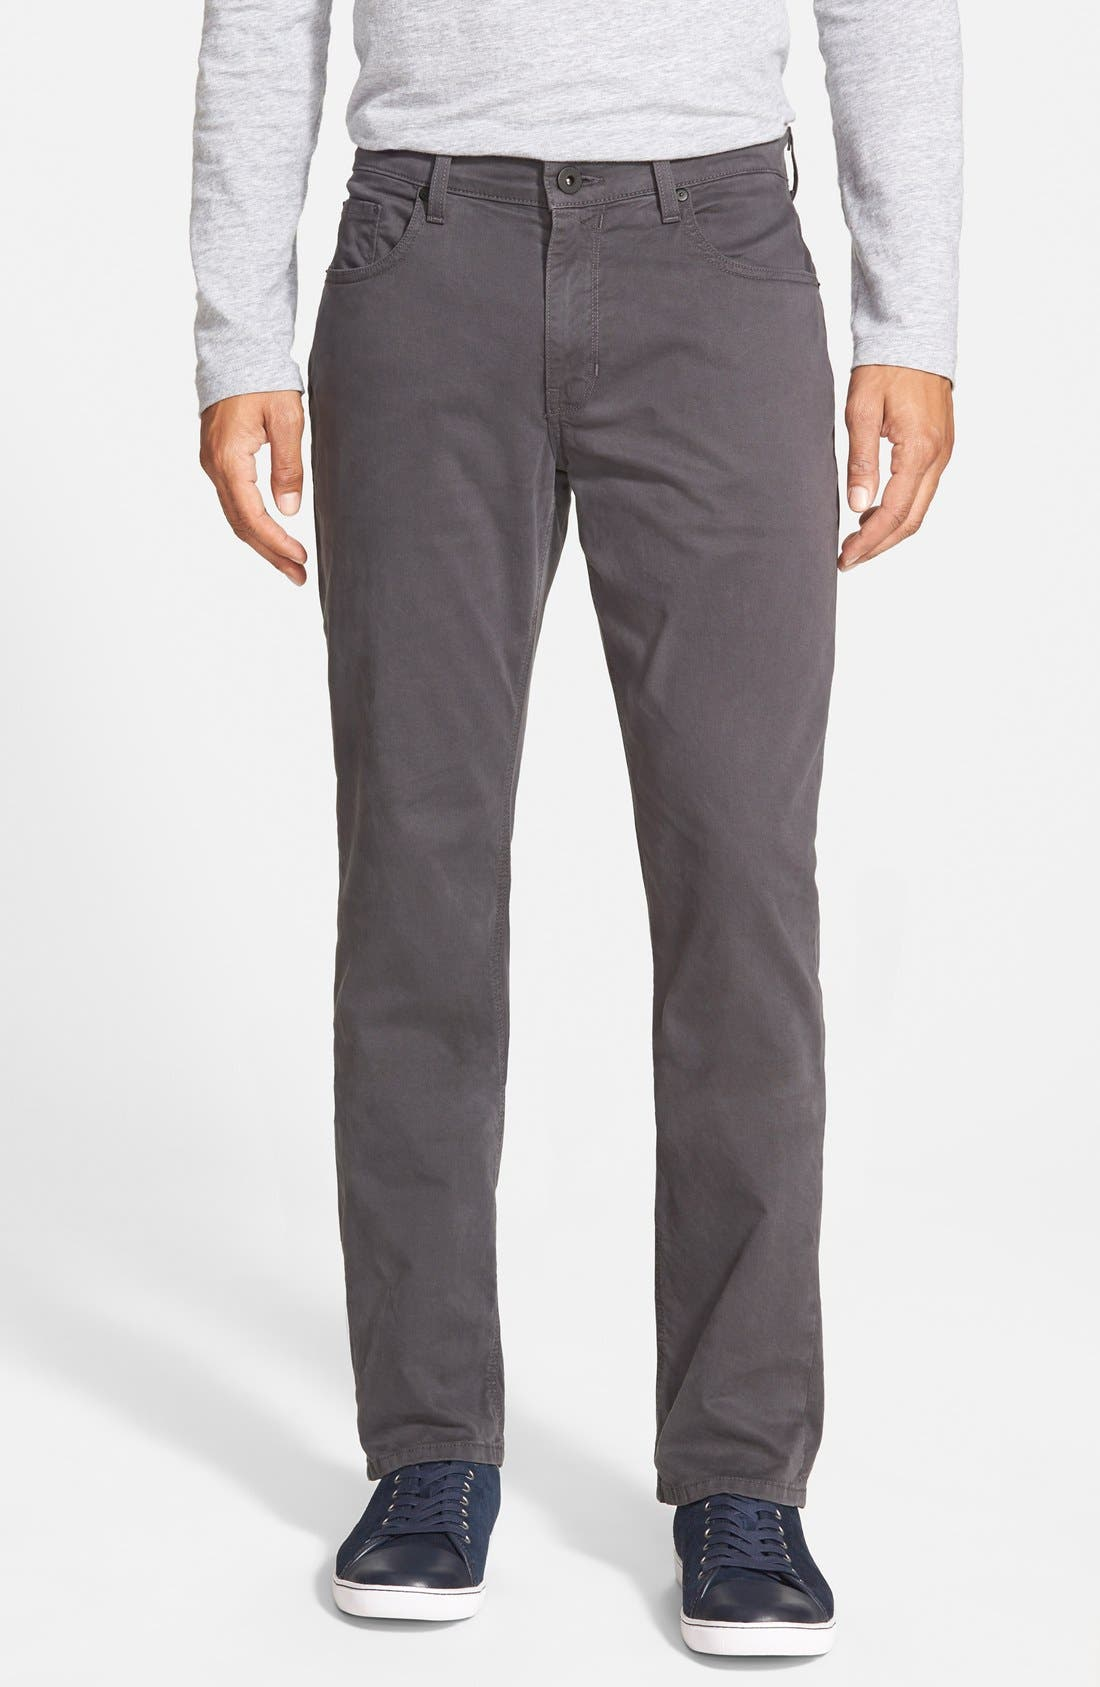 Normandie Slim Straight Leg Twill Pants,                         Main,                         color, SOOT DARK GREY